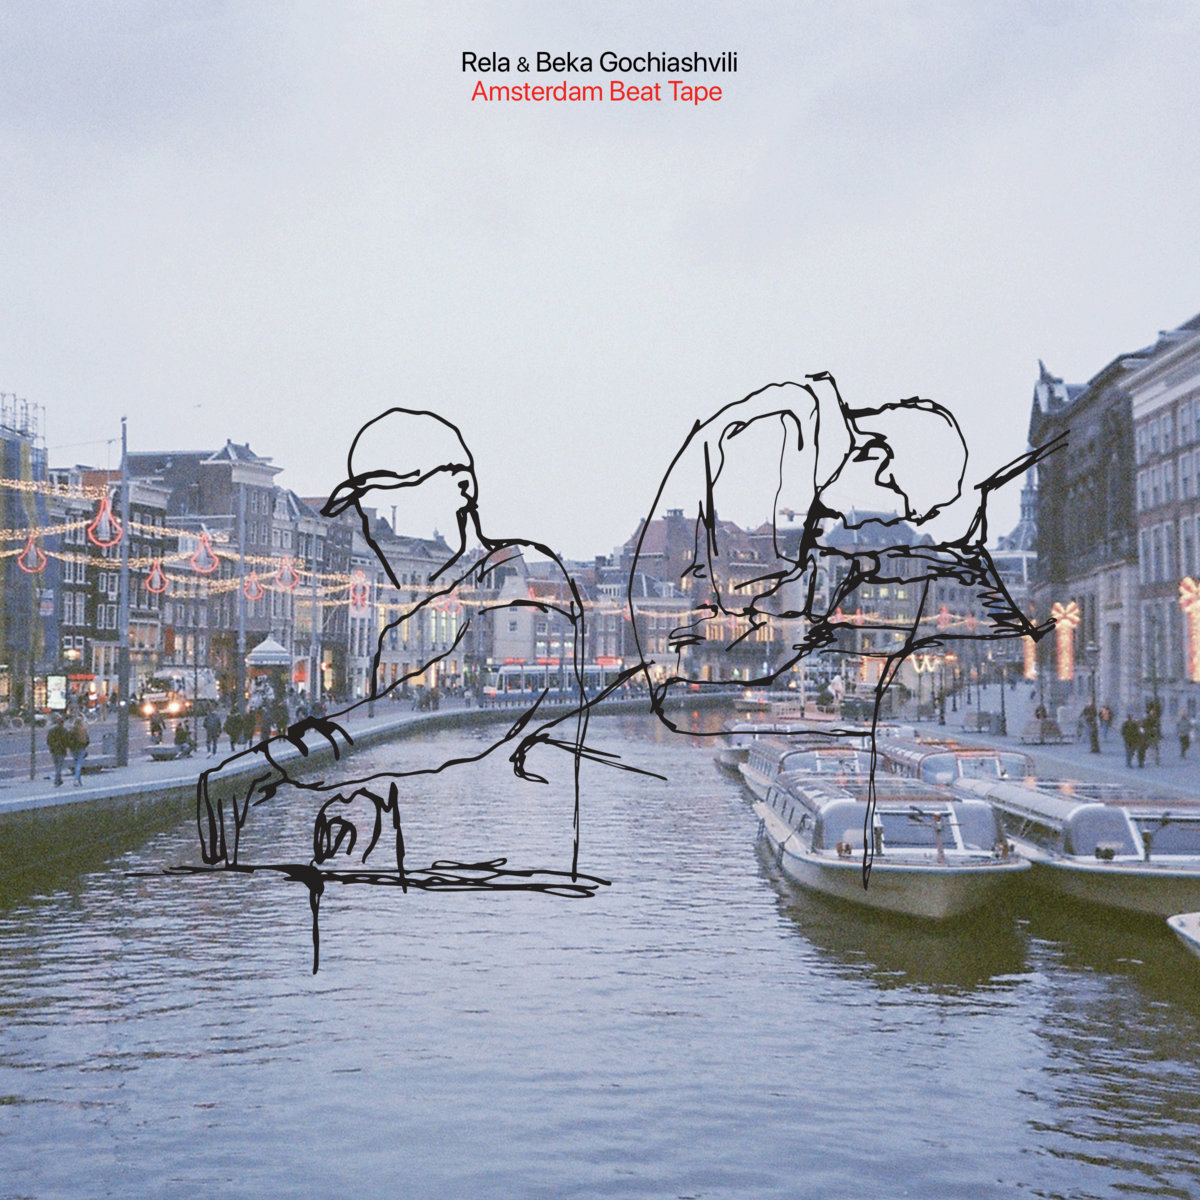 New Finds / No Words: Madlib, Elaquent, Shin-Ski, NCY Milky Band, The Primeridian, S. Fidelity & more